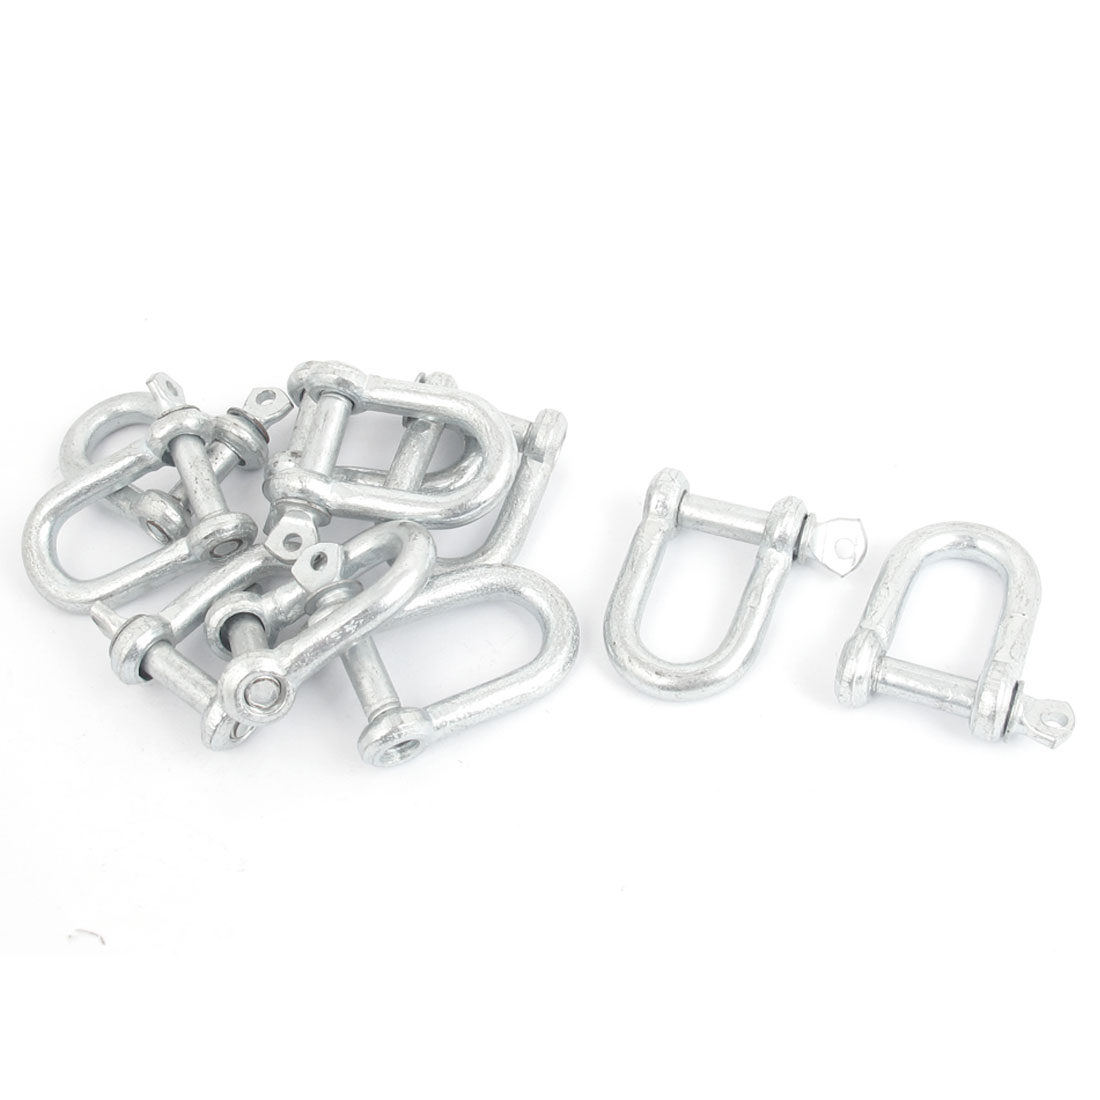 33mm x 23mm x 5mm Metal D Shackle U Lock Wire Rope Fastener 10 Pcs